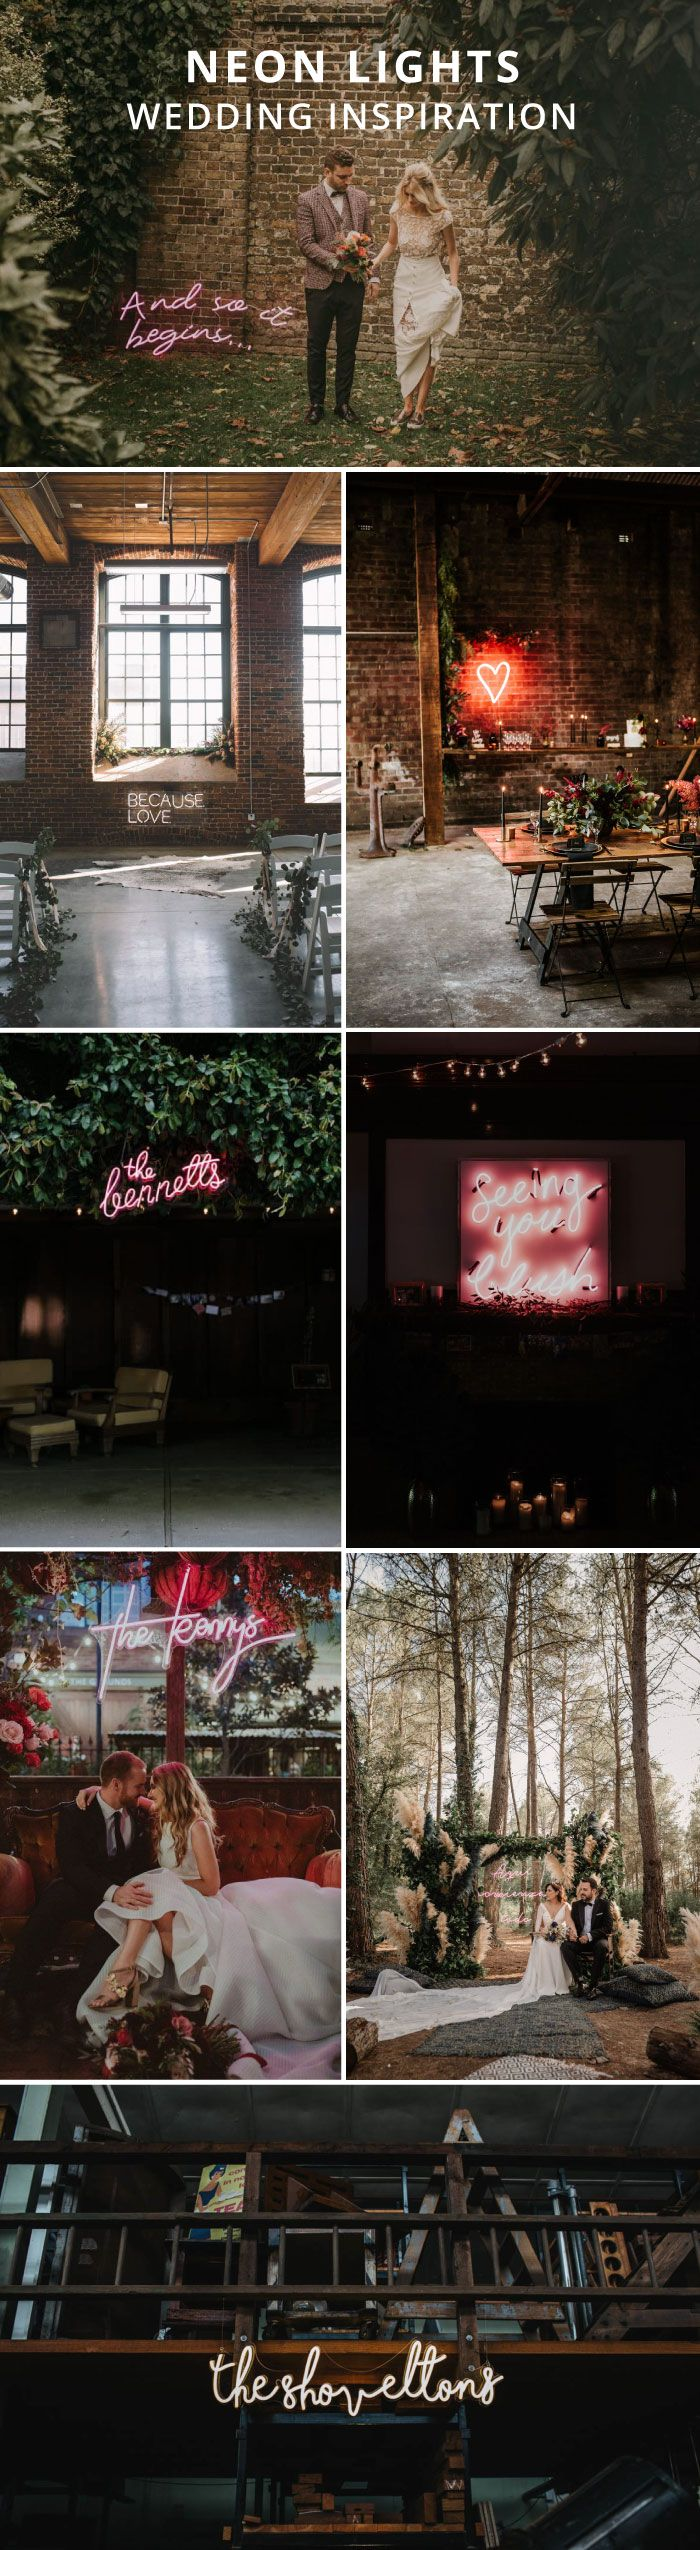 how to use neon lights at your wedding | Where to find neon lights | alternative wedding decor | alternative wedding lighting | Who makes the best neon wedding lights